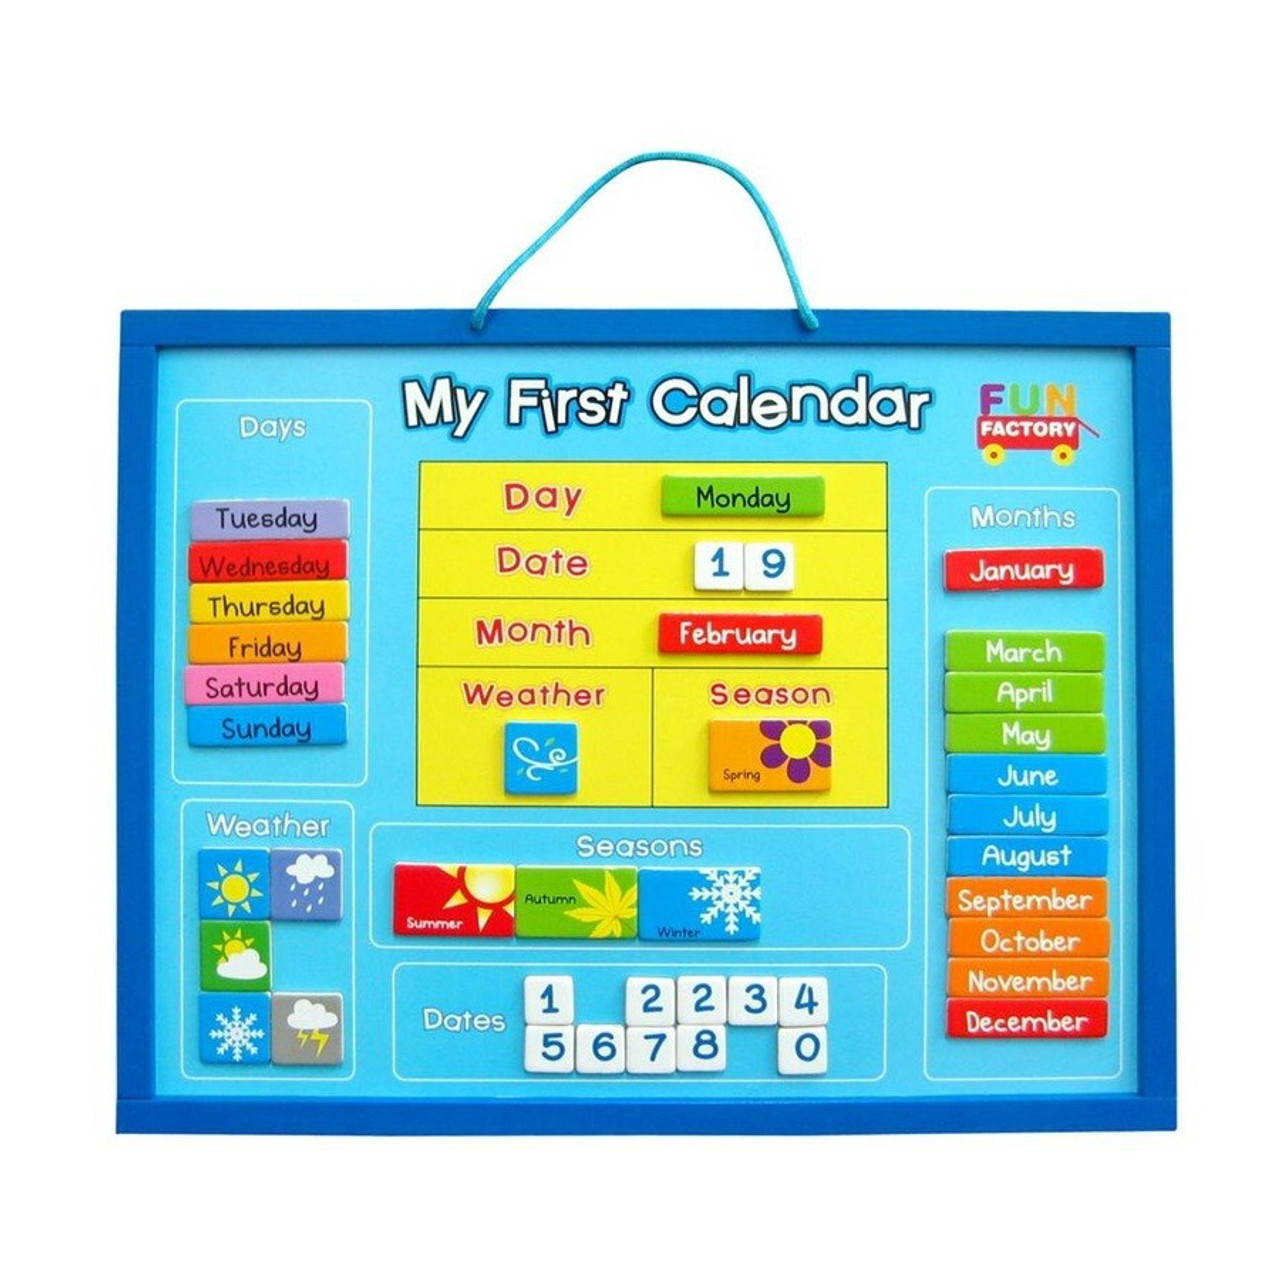 Hang My First Calendar on your wall and your child can learn about the days of the week as well as concepts related to the date, month, time, weather and 4 seasons.